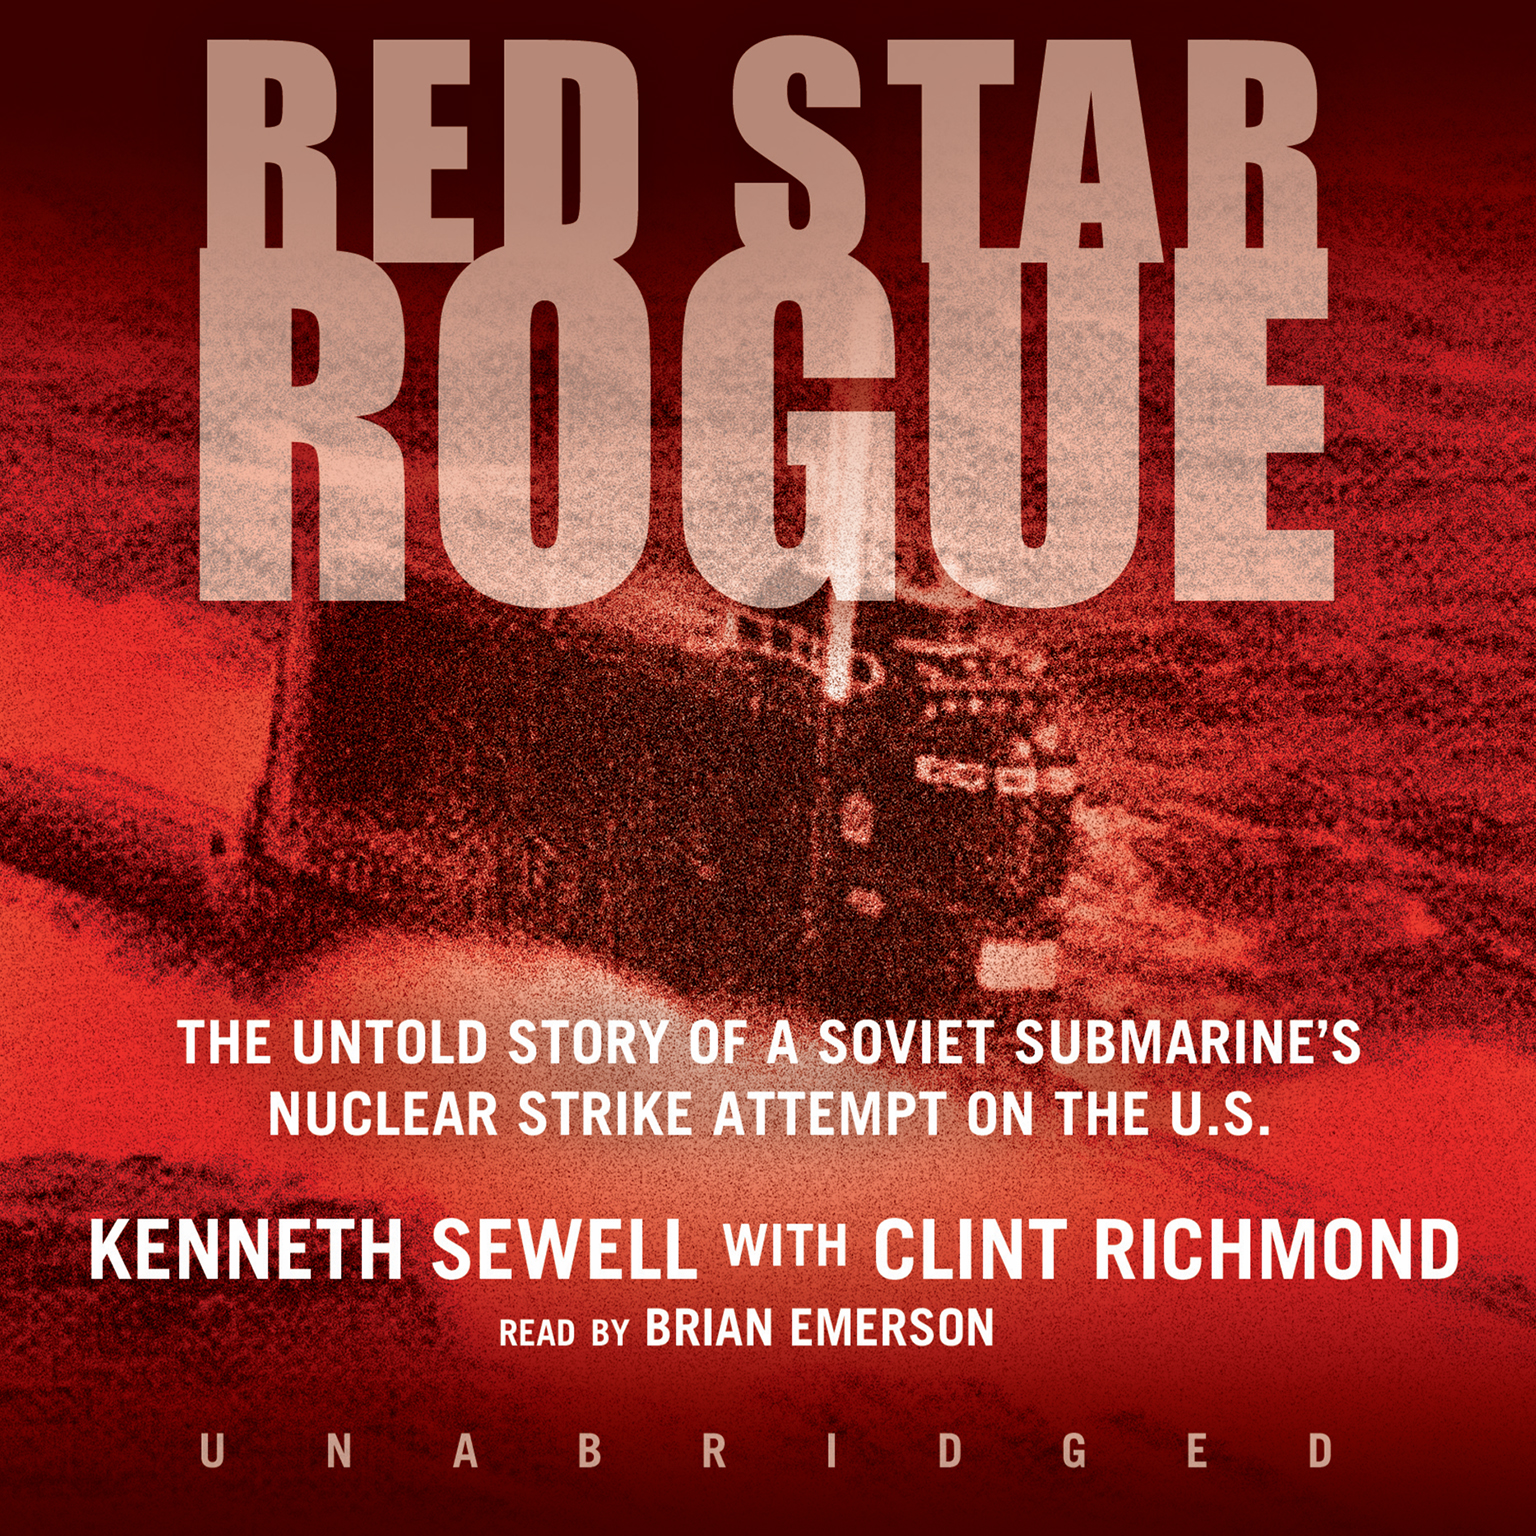 Printable Red Star Rogue: The Untold Story of a Soviet Submarine's Nuclear Strike Attempt on the U.S. Audiobook Cover Art